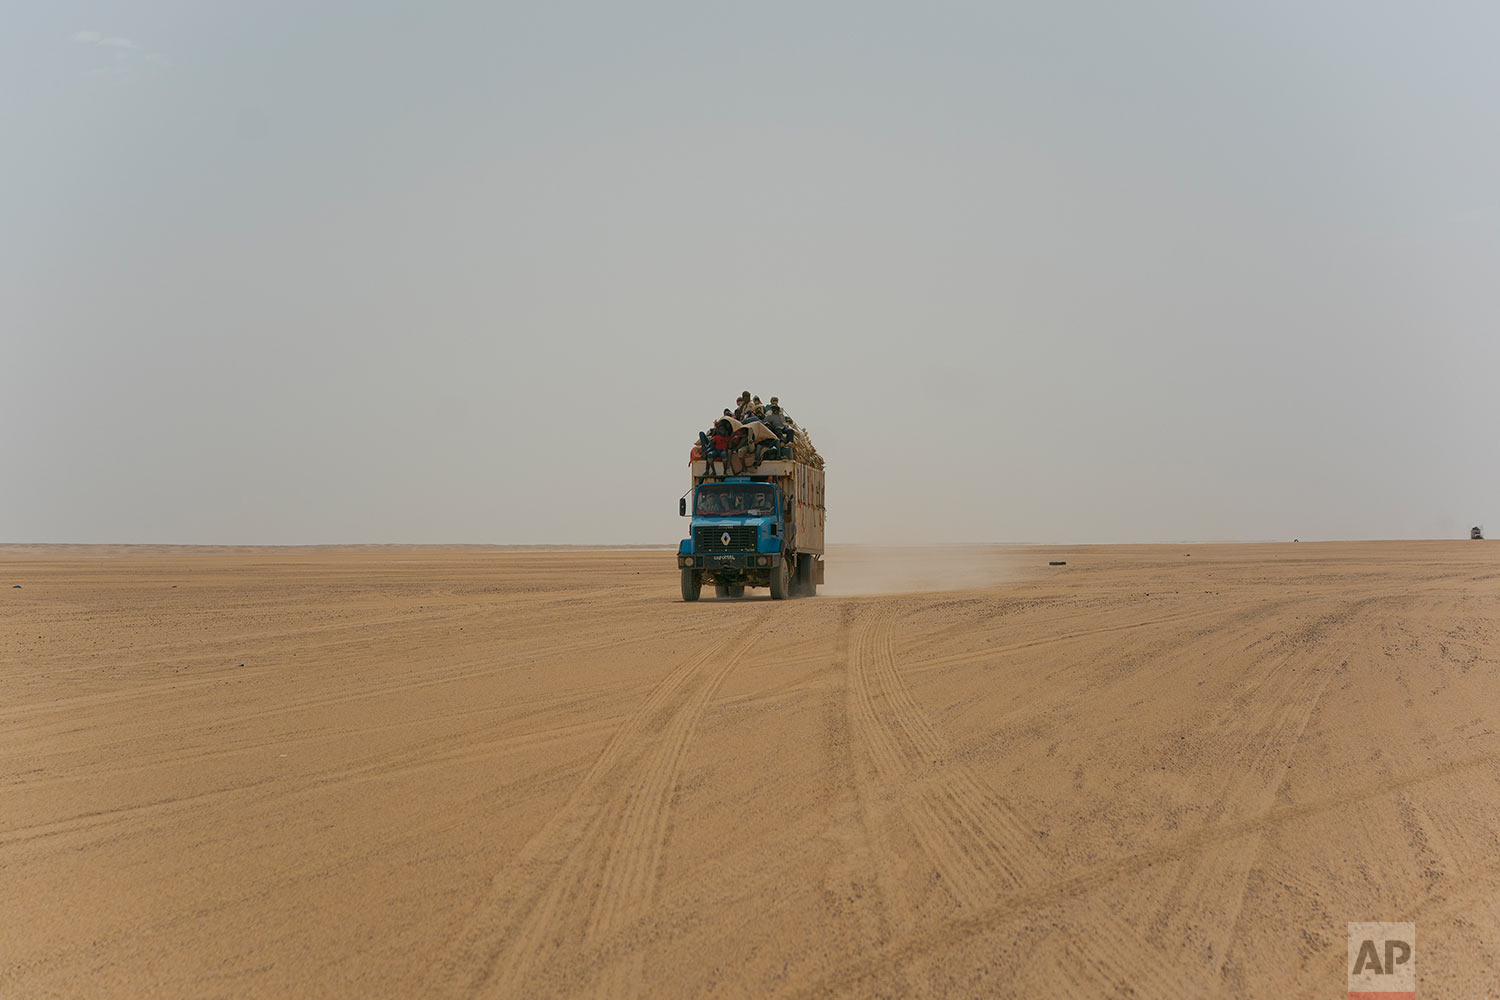 A truck carrying goods and migrants drives through Niger's Tenere desert region of the south central Sahara on Sunday, June 3, 2018. Once a well-worn roadway for overlander tourists, the highway's 4,500 kilometers (2,800 miles) are a favored path for migrants heading north in hopes of a better life -and more recently thousands who are being expelled south from Algeria. (AP Photo/Jerome Delay)